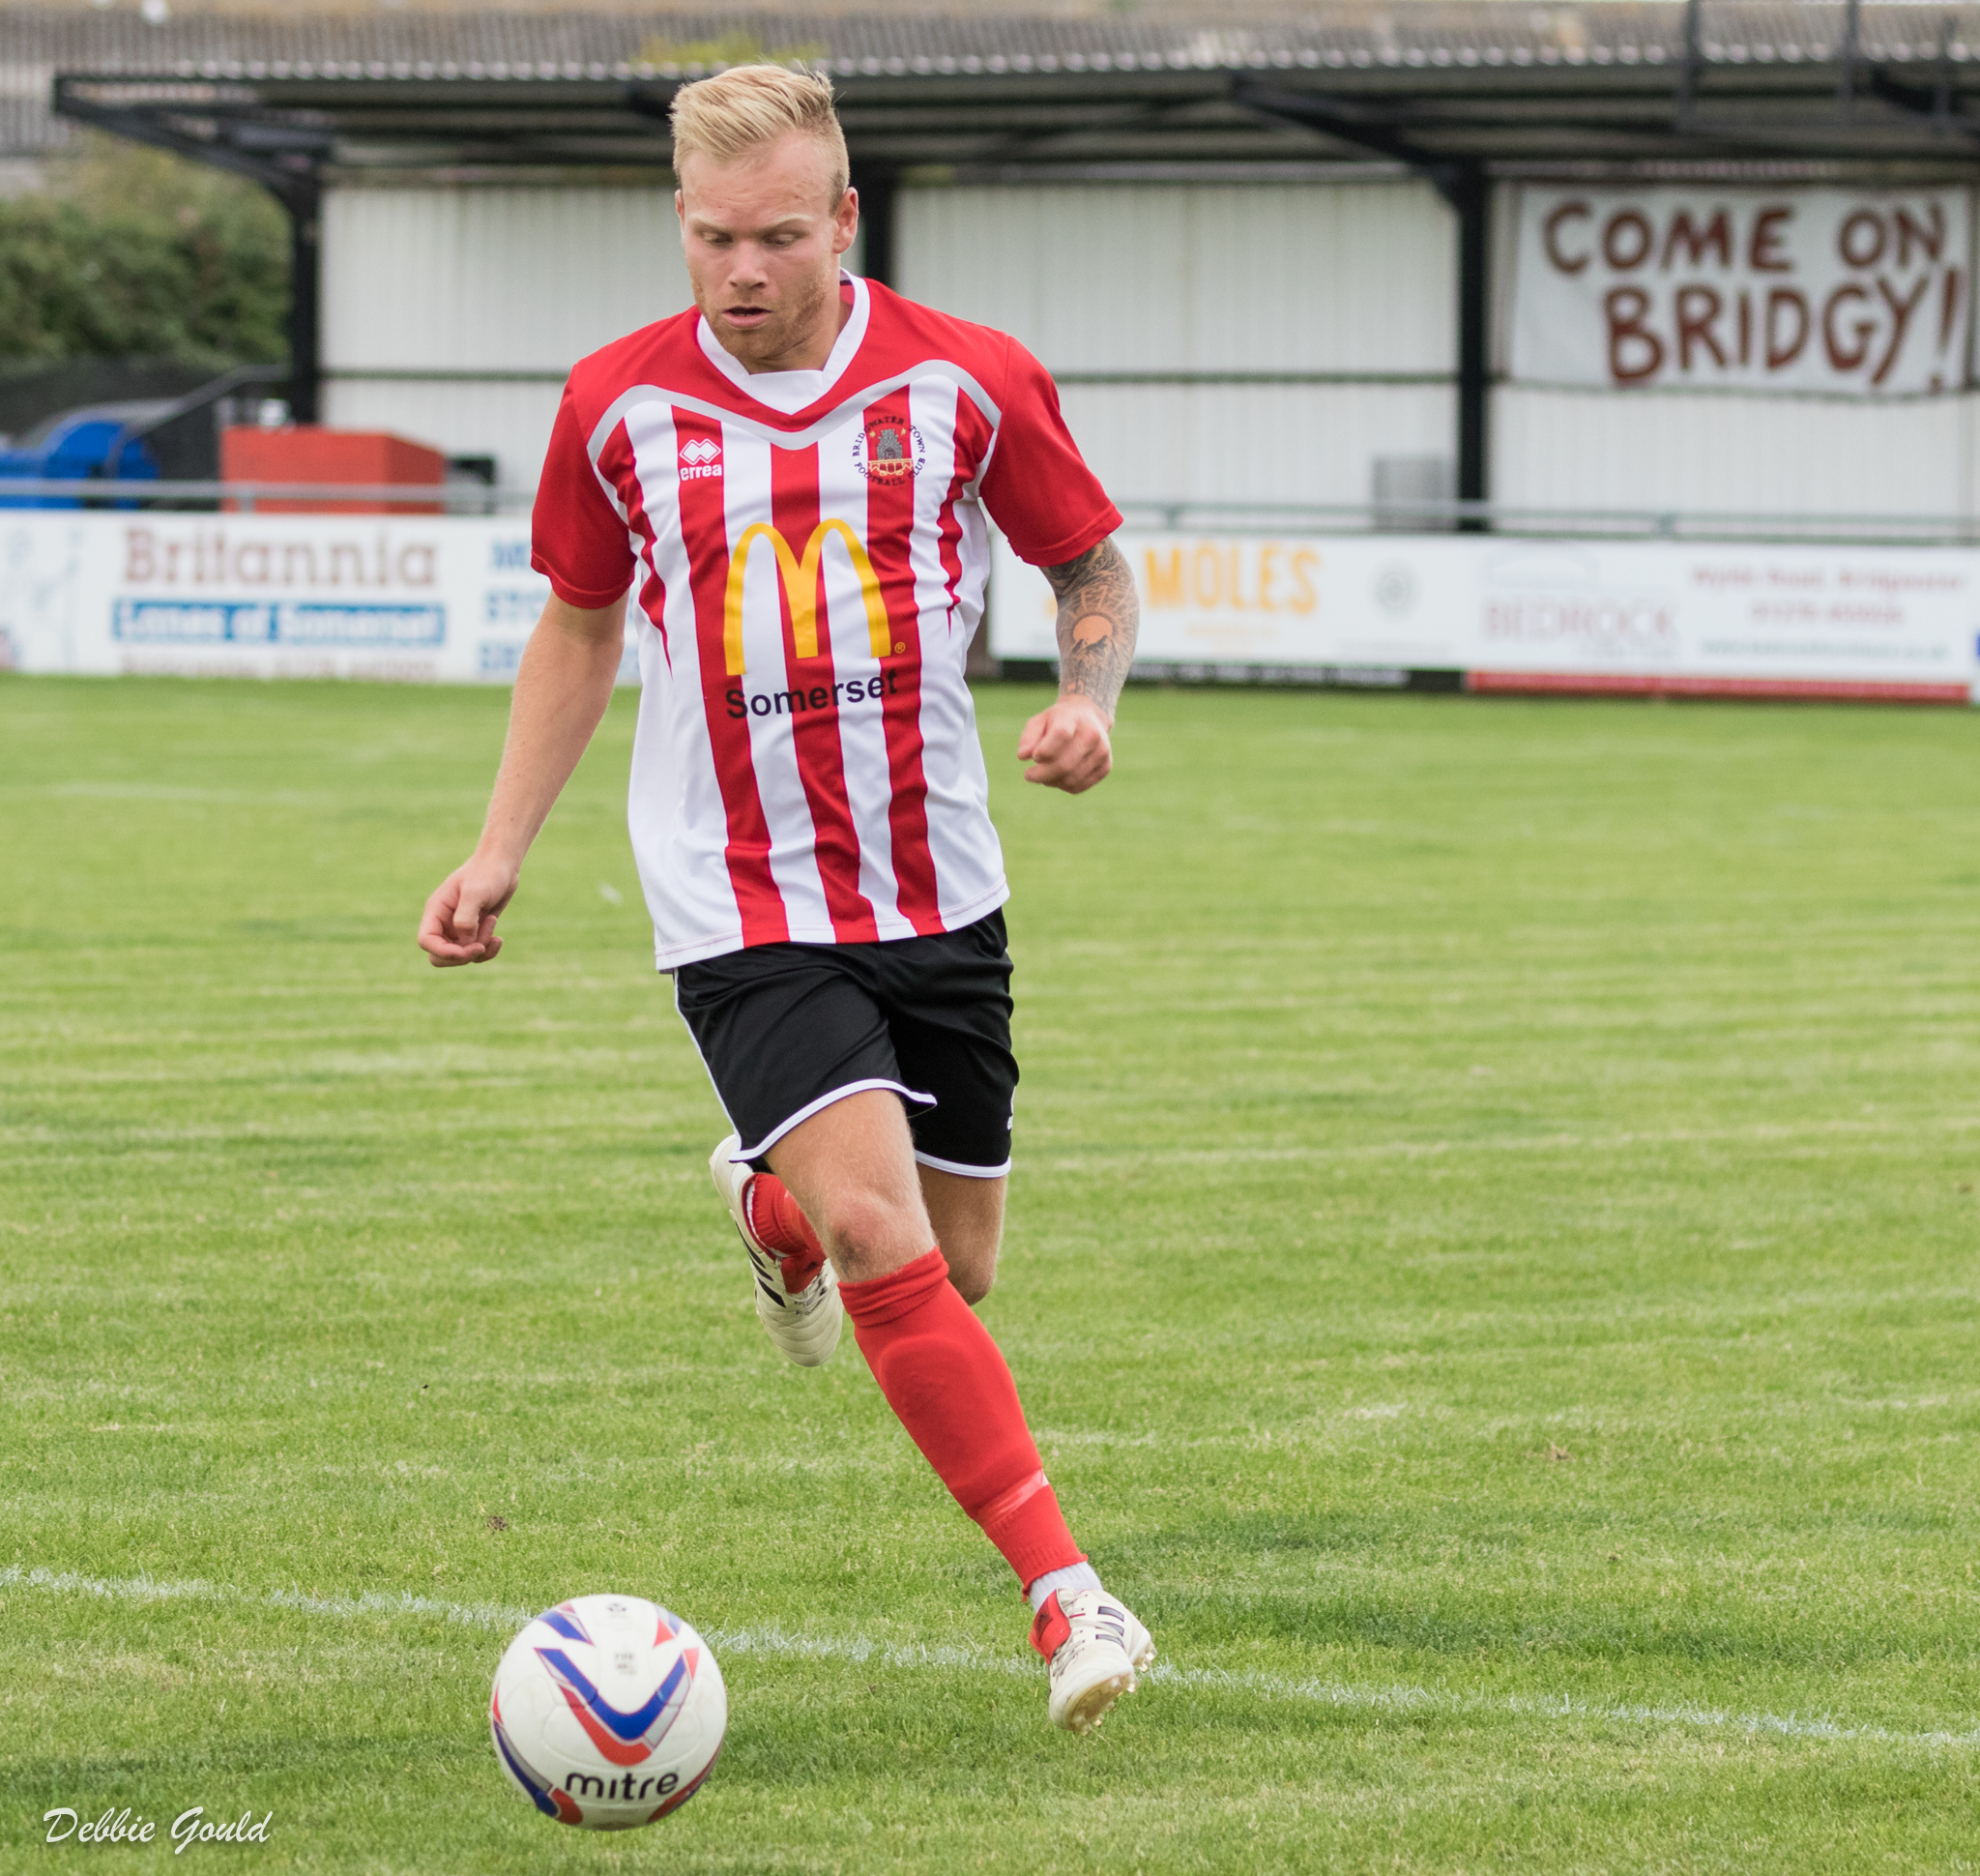 FINE DISPLAY: Jake Llewellyn was in great form as Bridgwater Town beat Wellington. Pic: Debbie Gould